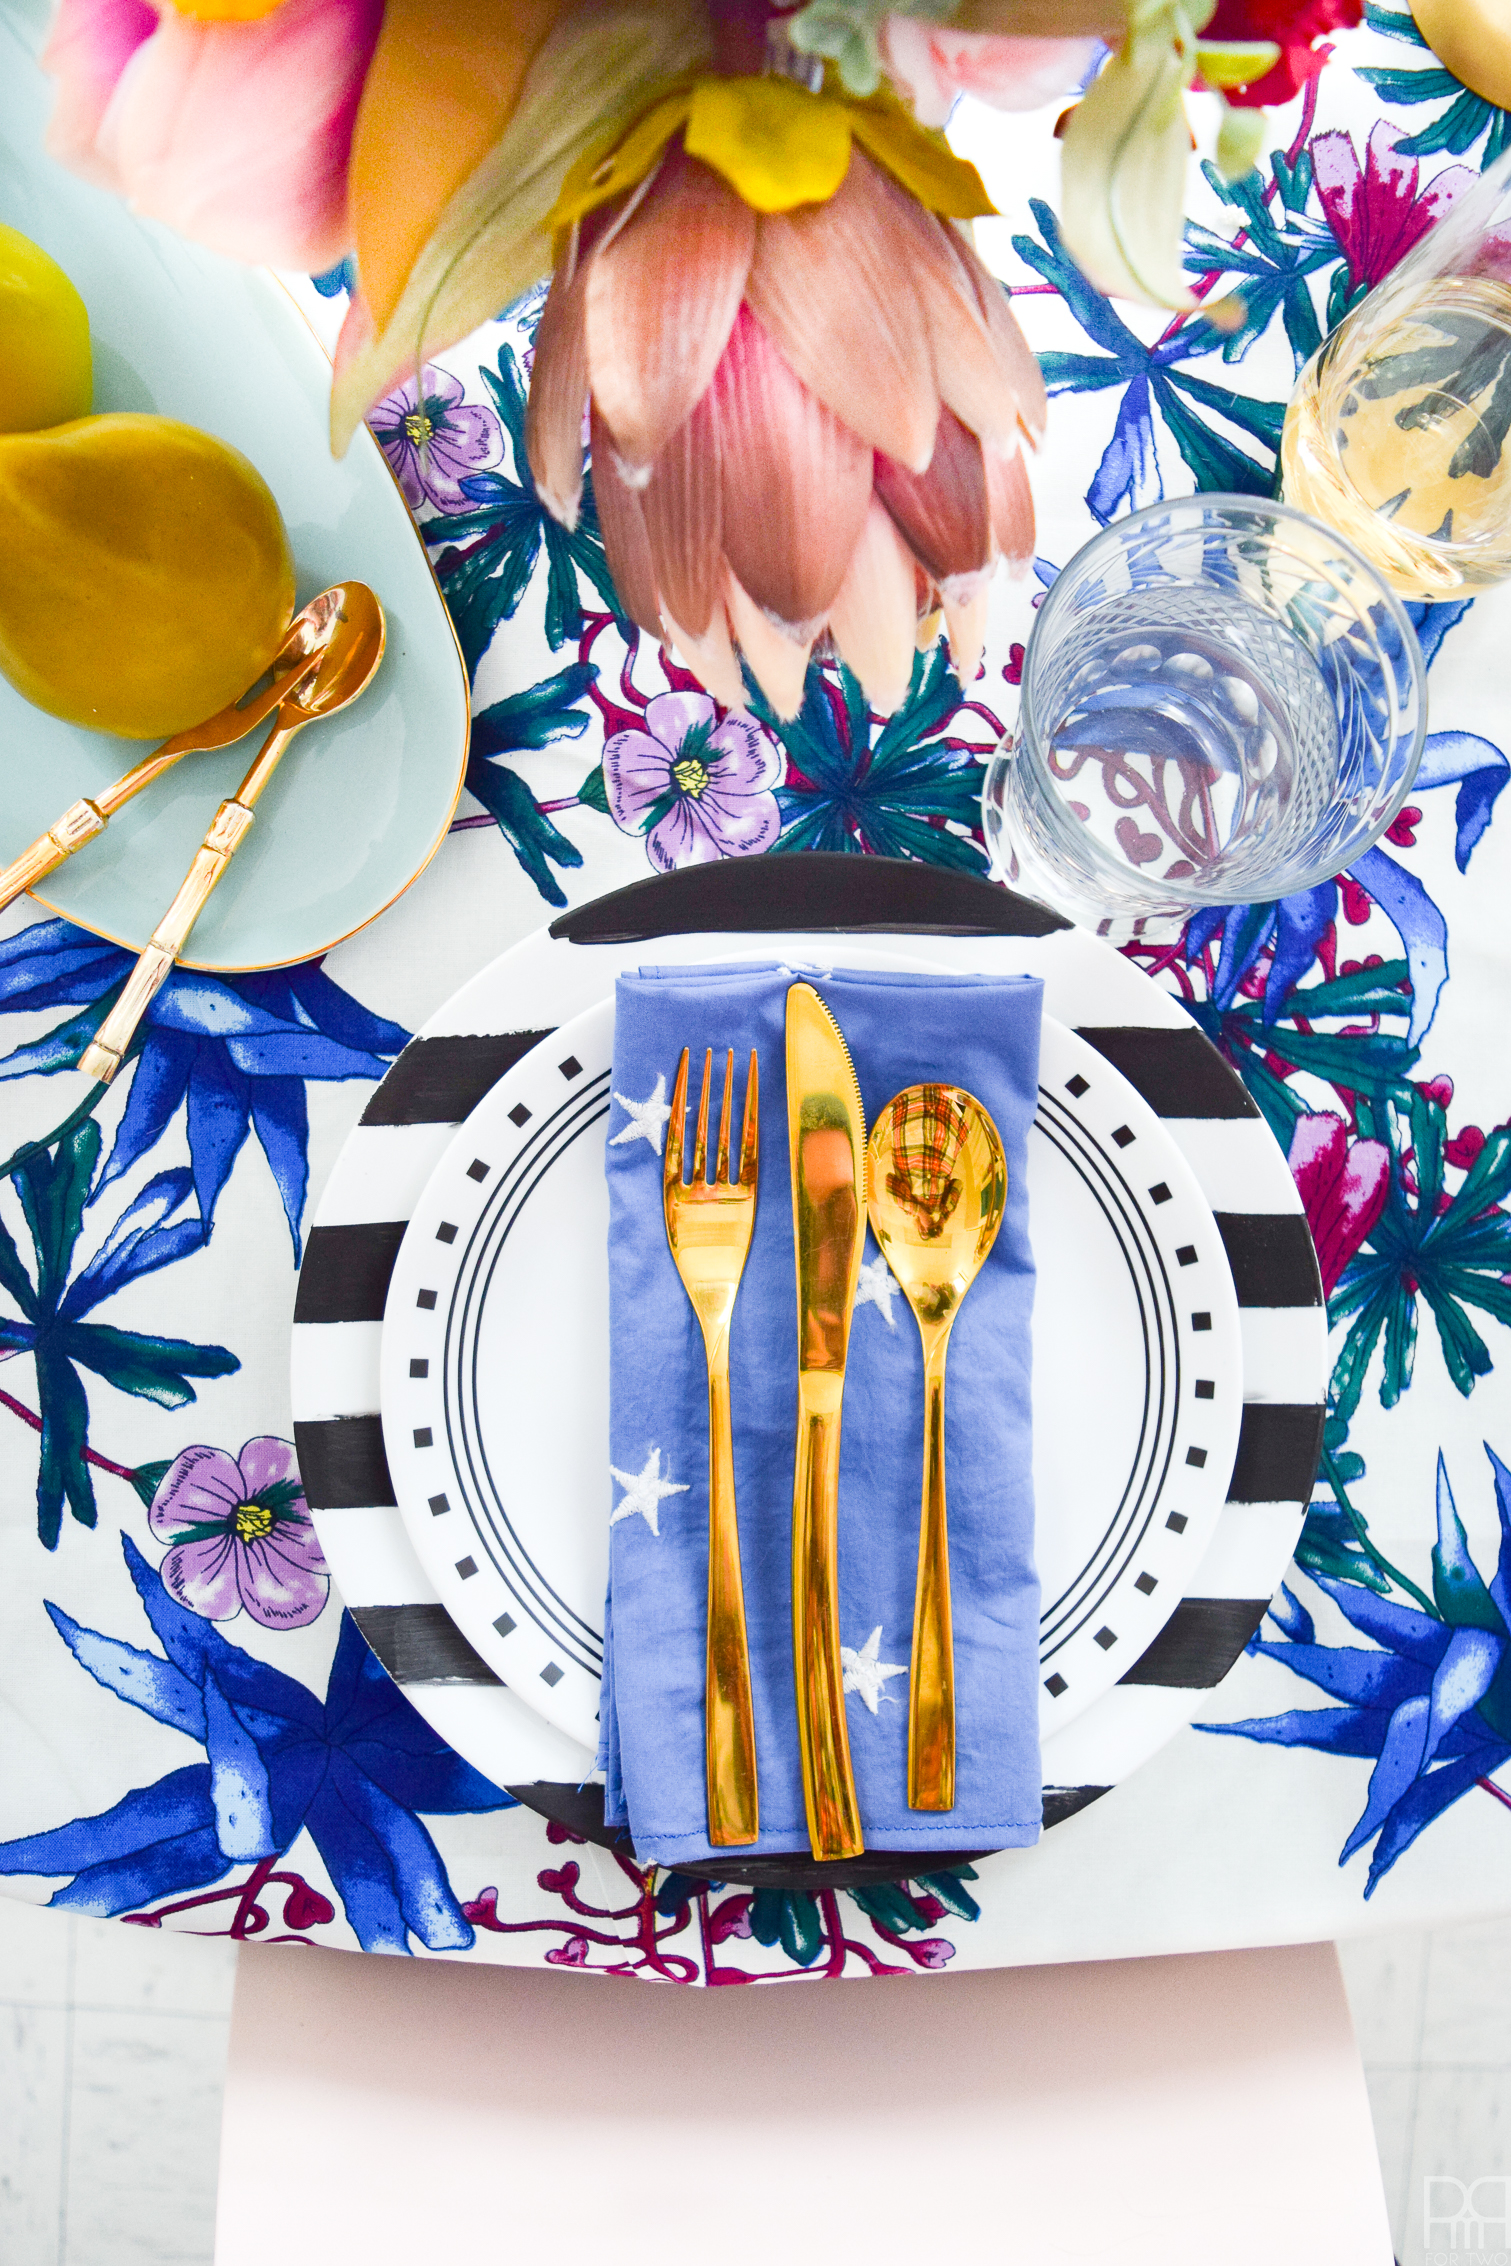 A Blue Valentine Romantic Tablescape for those of us who don't celebrate Valentine's day in a traditional way. Lush florals, rich purples and royal blues are what makes this place setting unique.